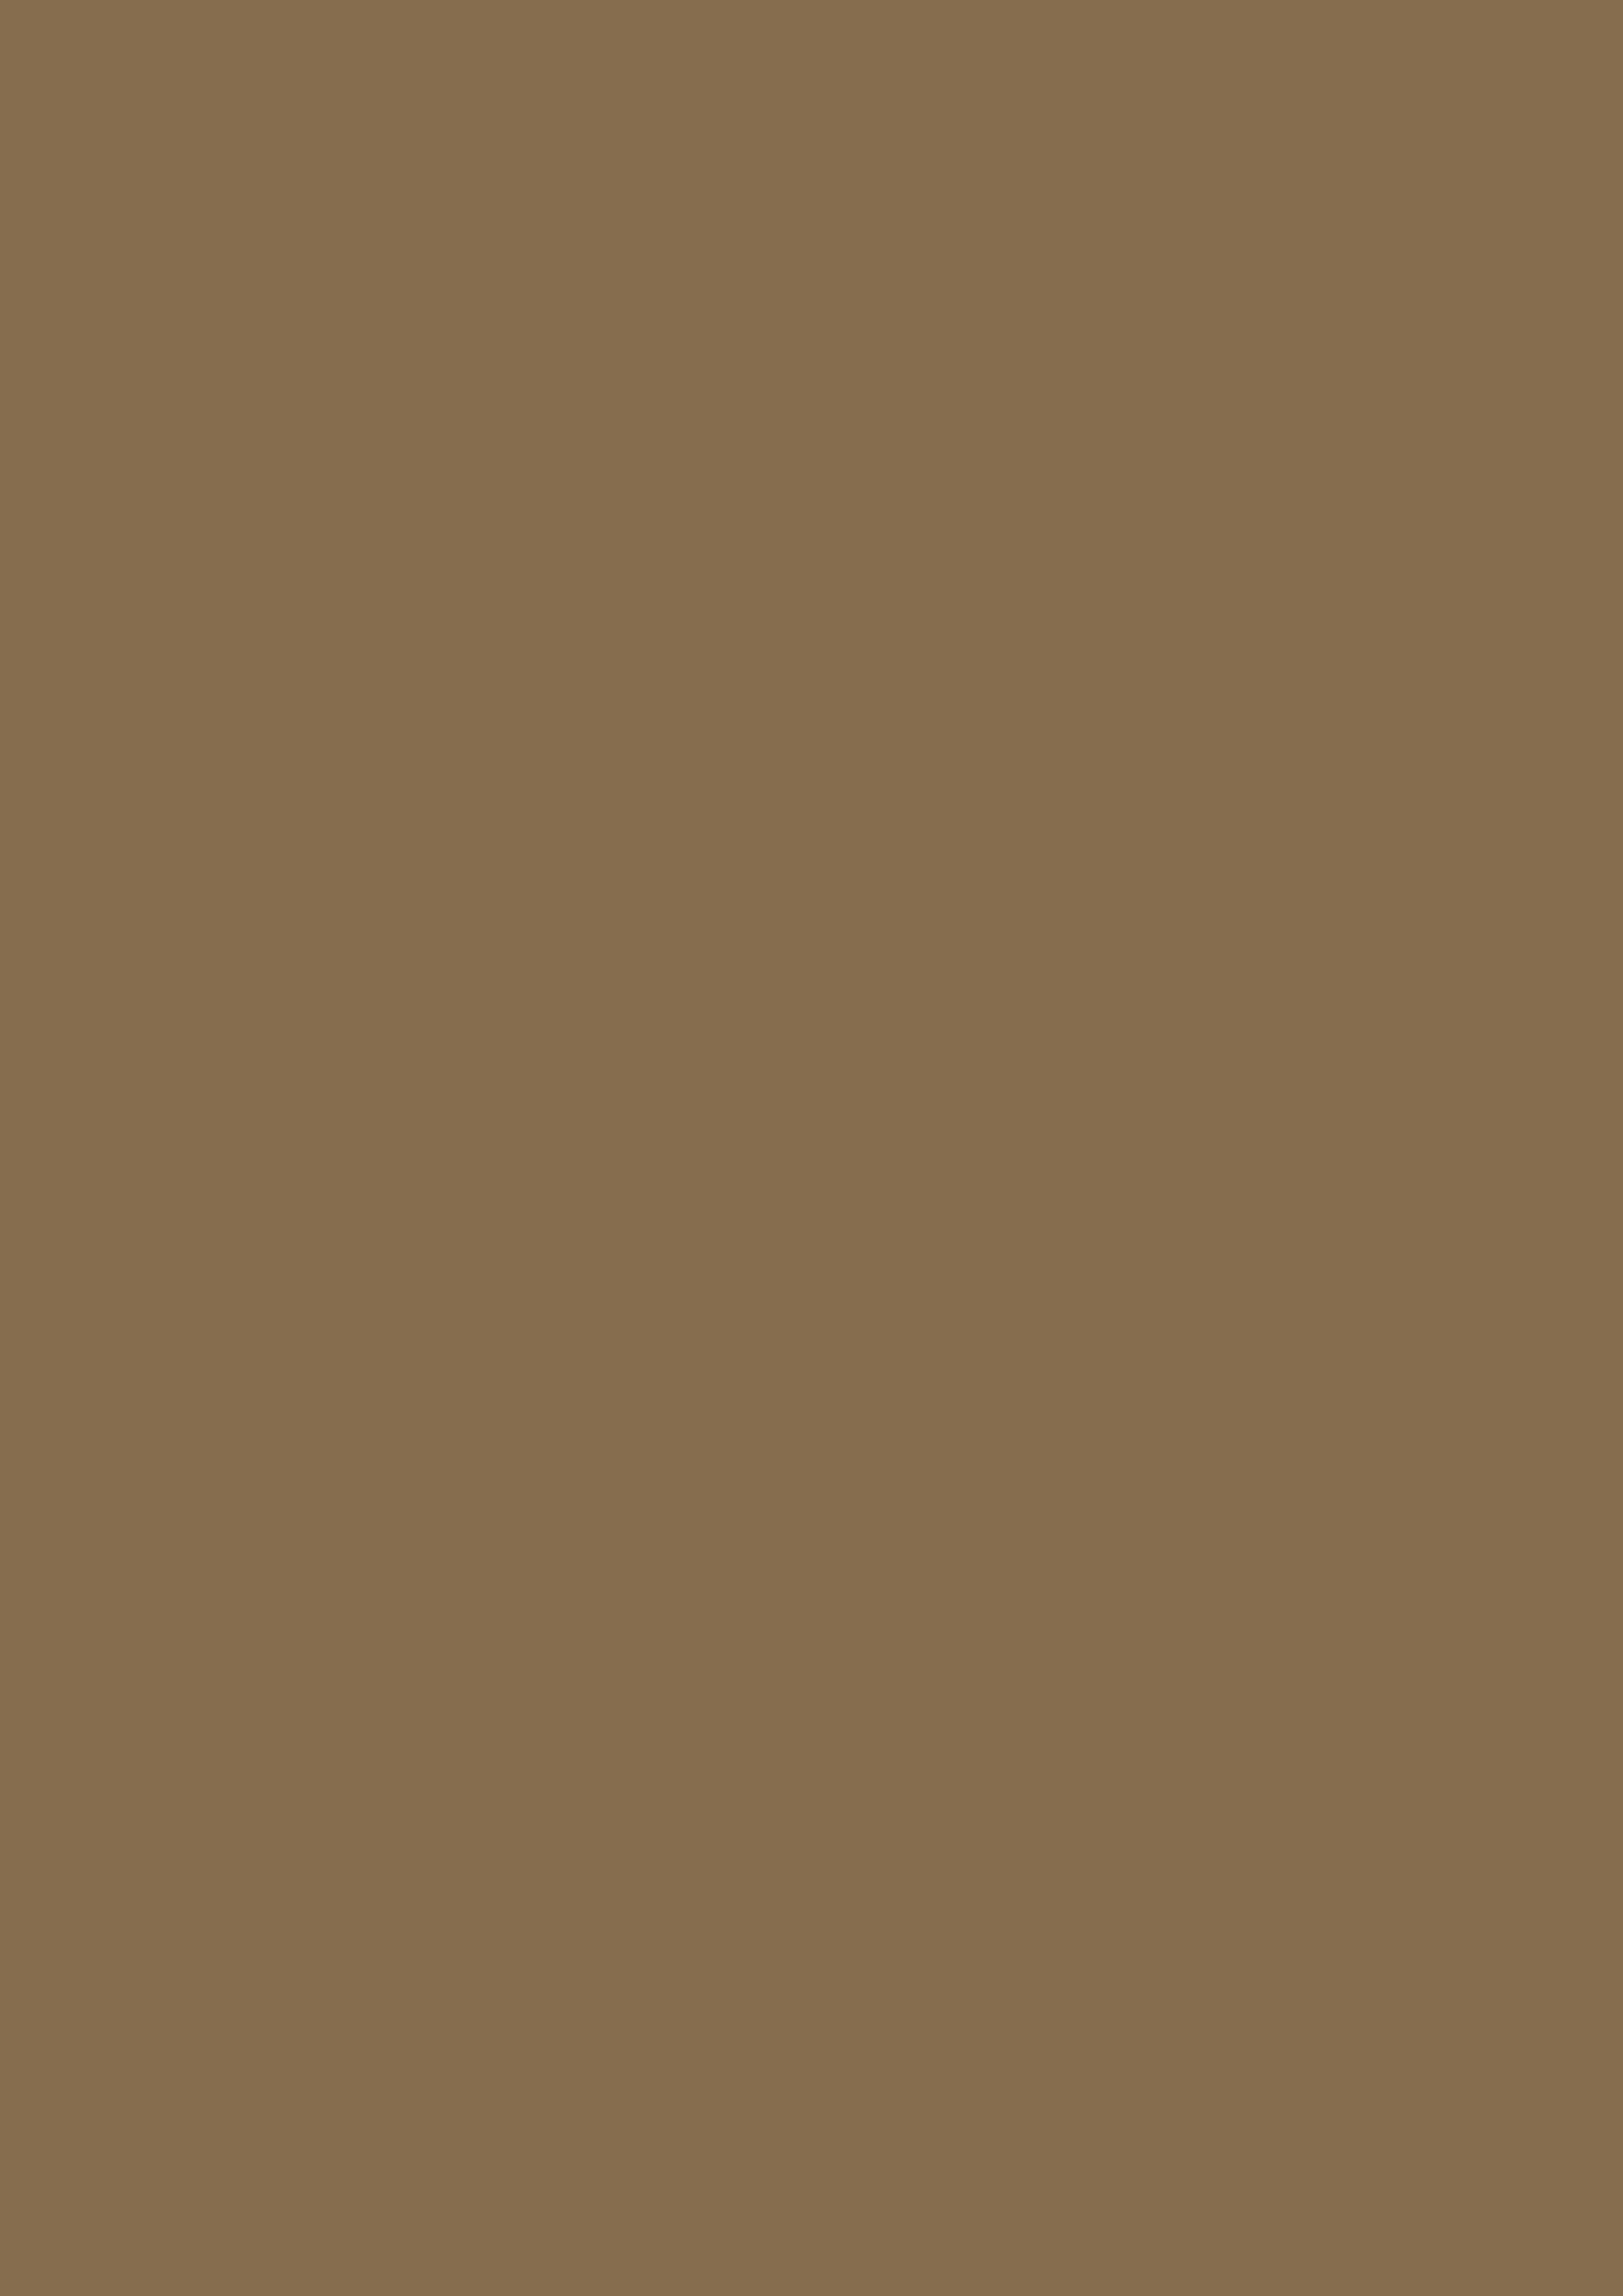 2480x3508 French Bistre Solid Color Background